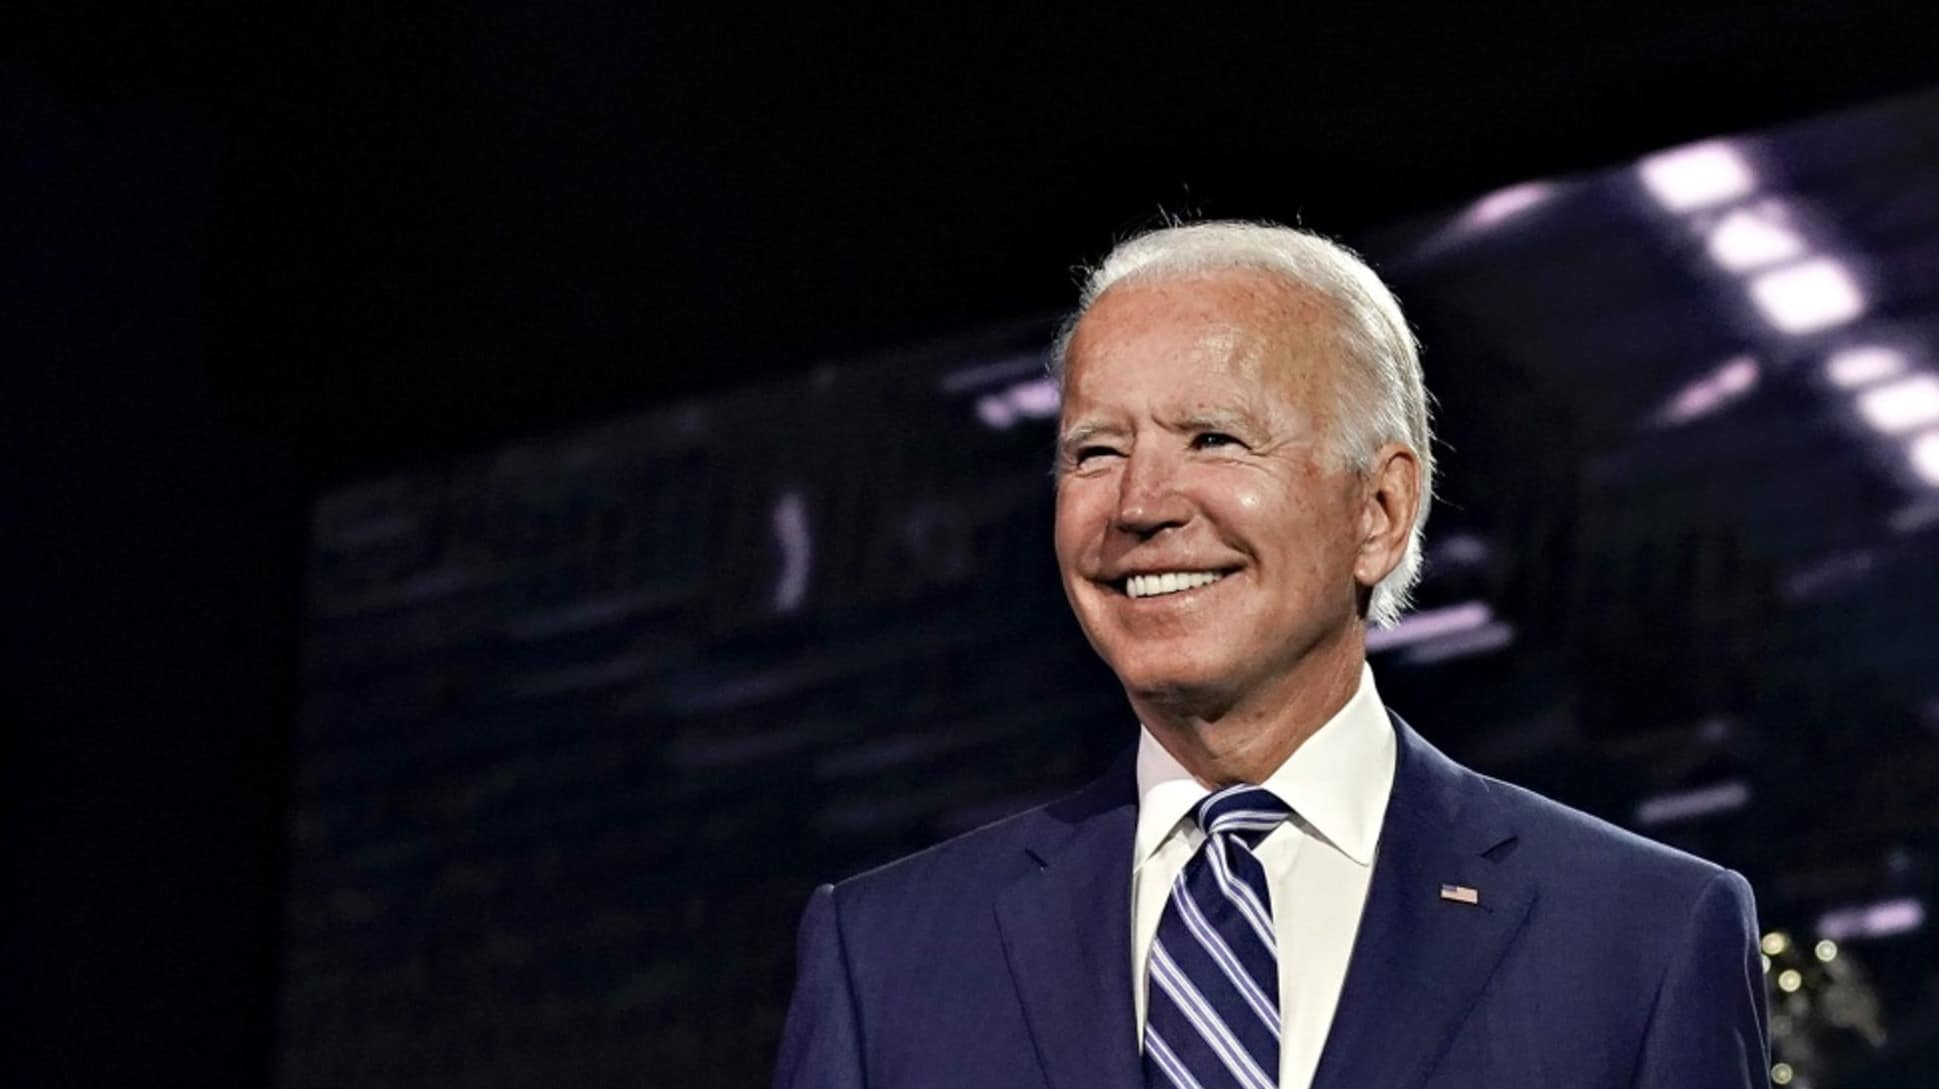 'Do I Look Like a Radical Socialist Who Has a Soft Spot For Rioters?' Biden Replies For On Trump's Attacks